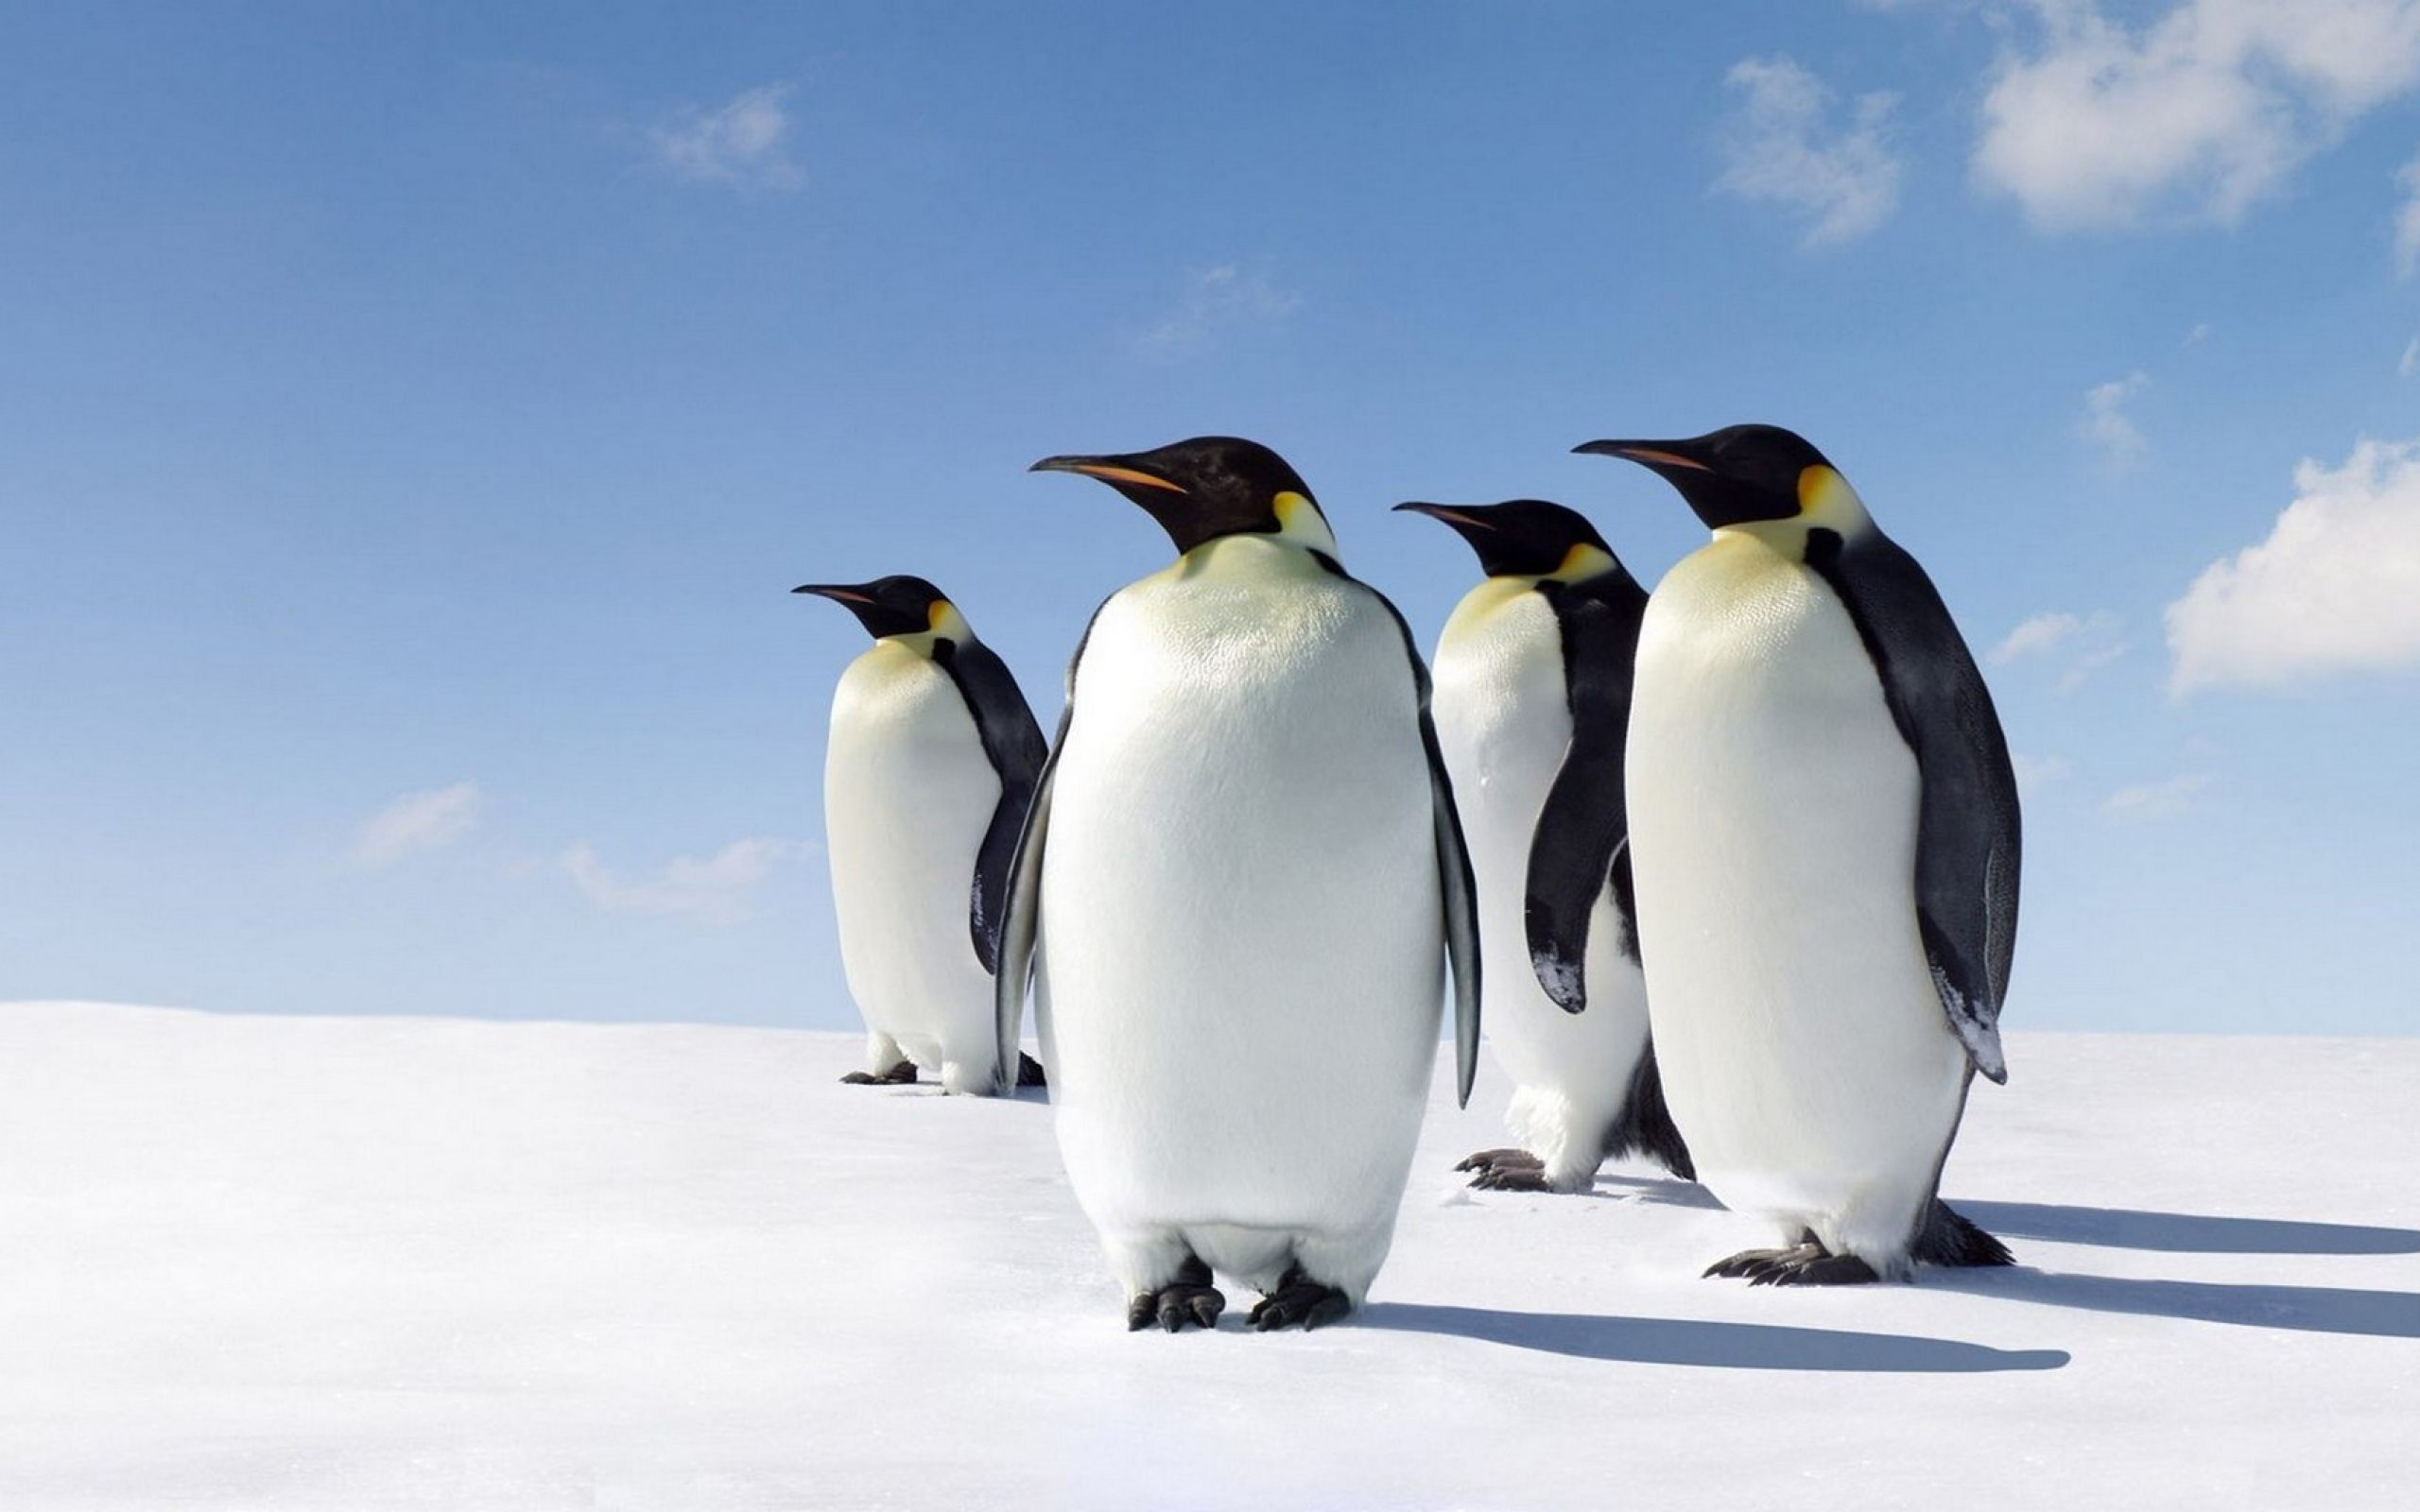 Cute Penguins Wallpaper HD Download For Desktop amp Mobile 2560x1600